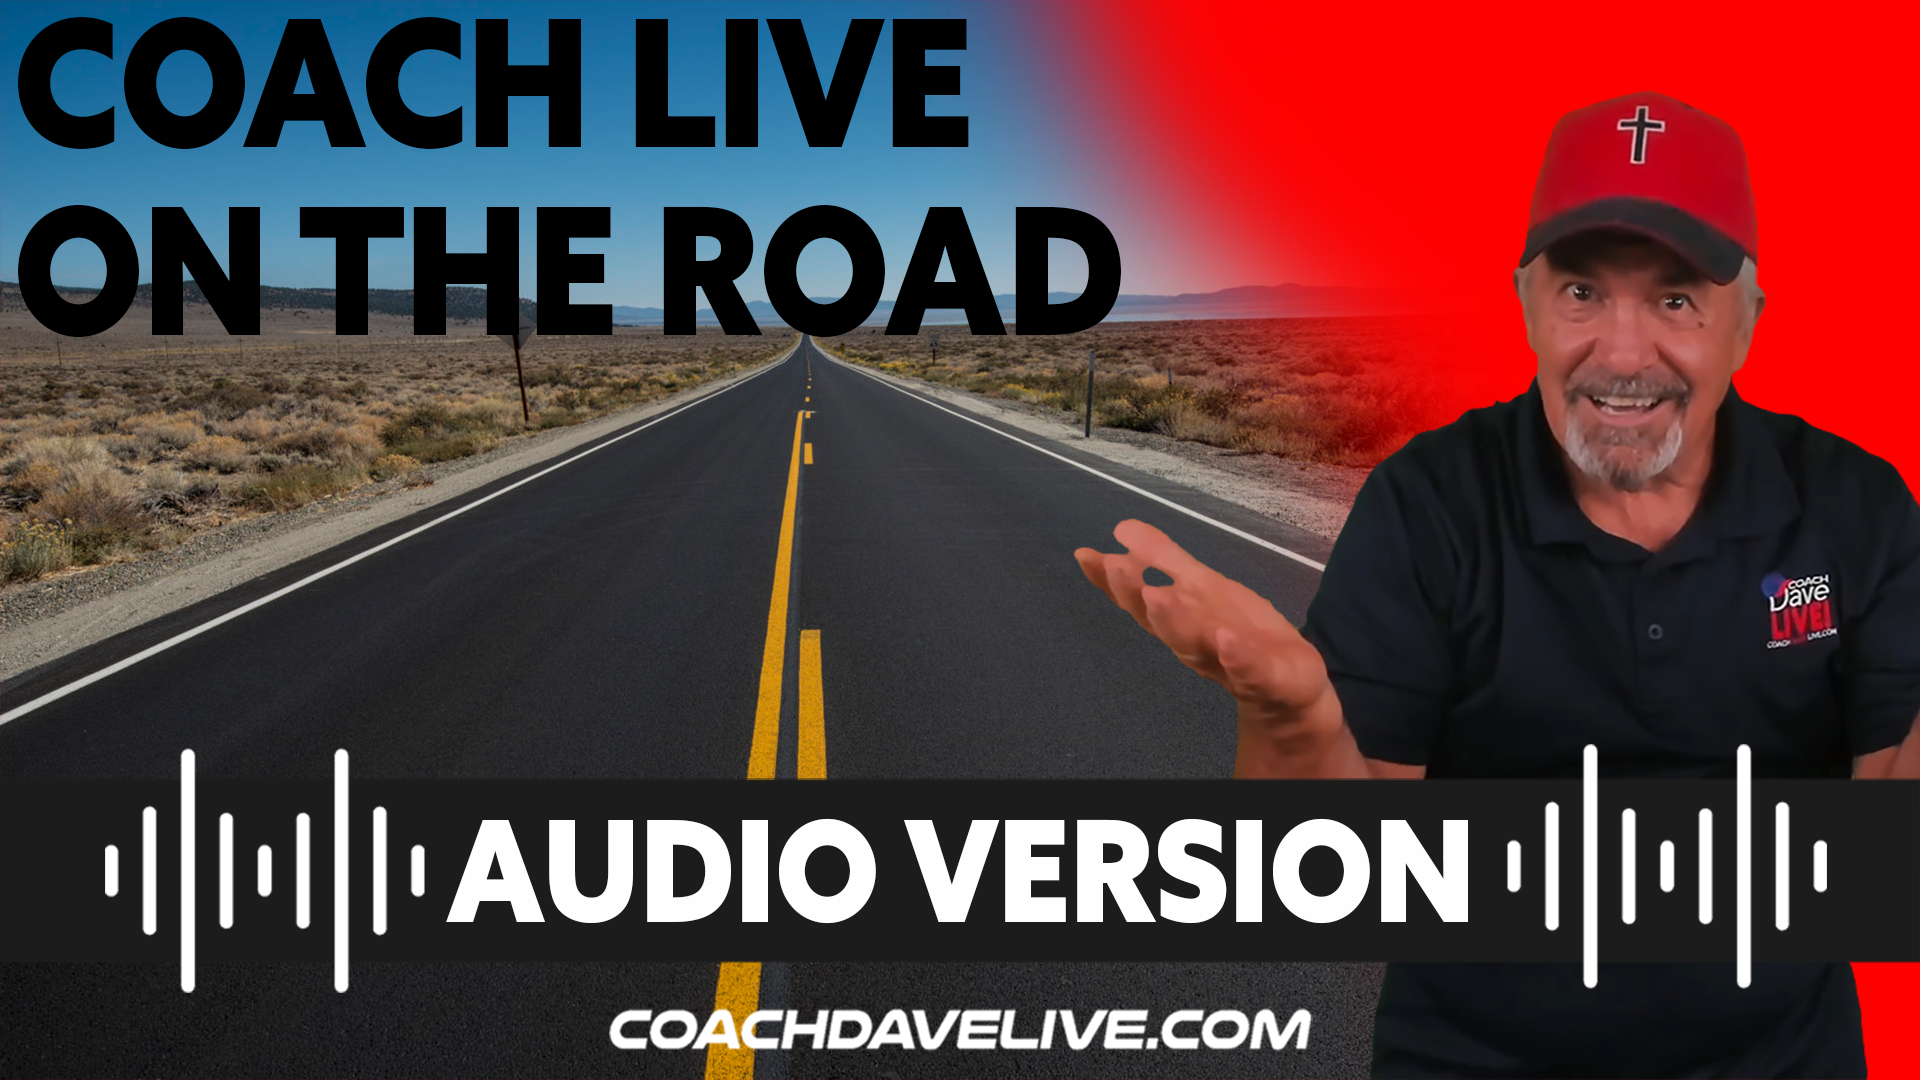 Coach Dave LIVE   9-2-2021   COACH LIVE ON THE ROAD - AUDIO ONLY